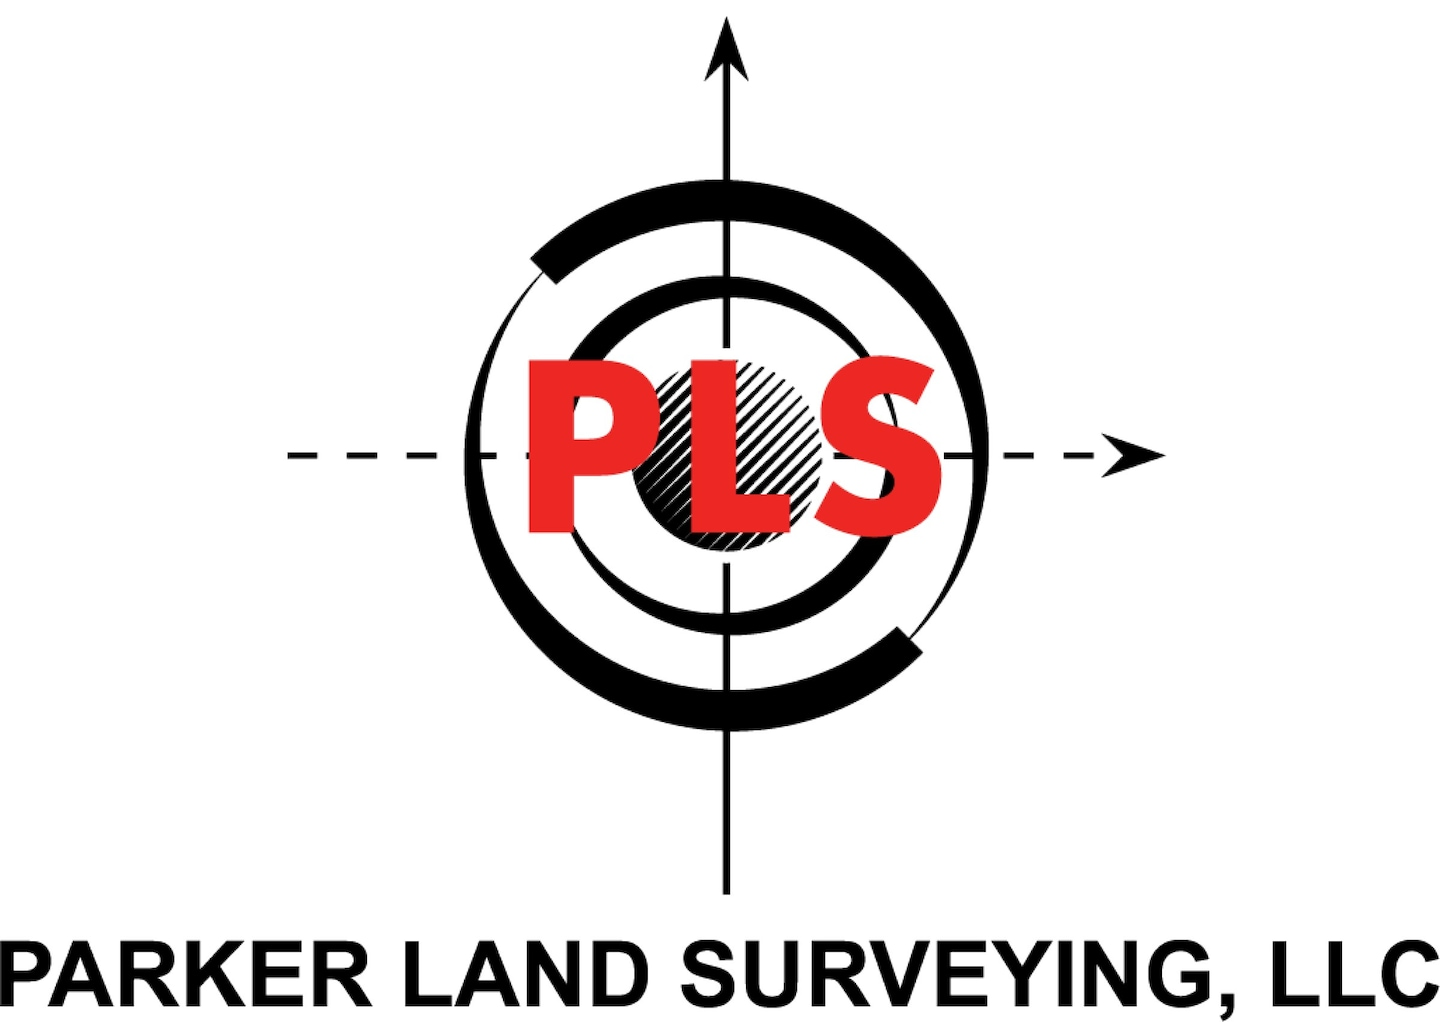 Parker Land Surveying